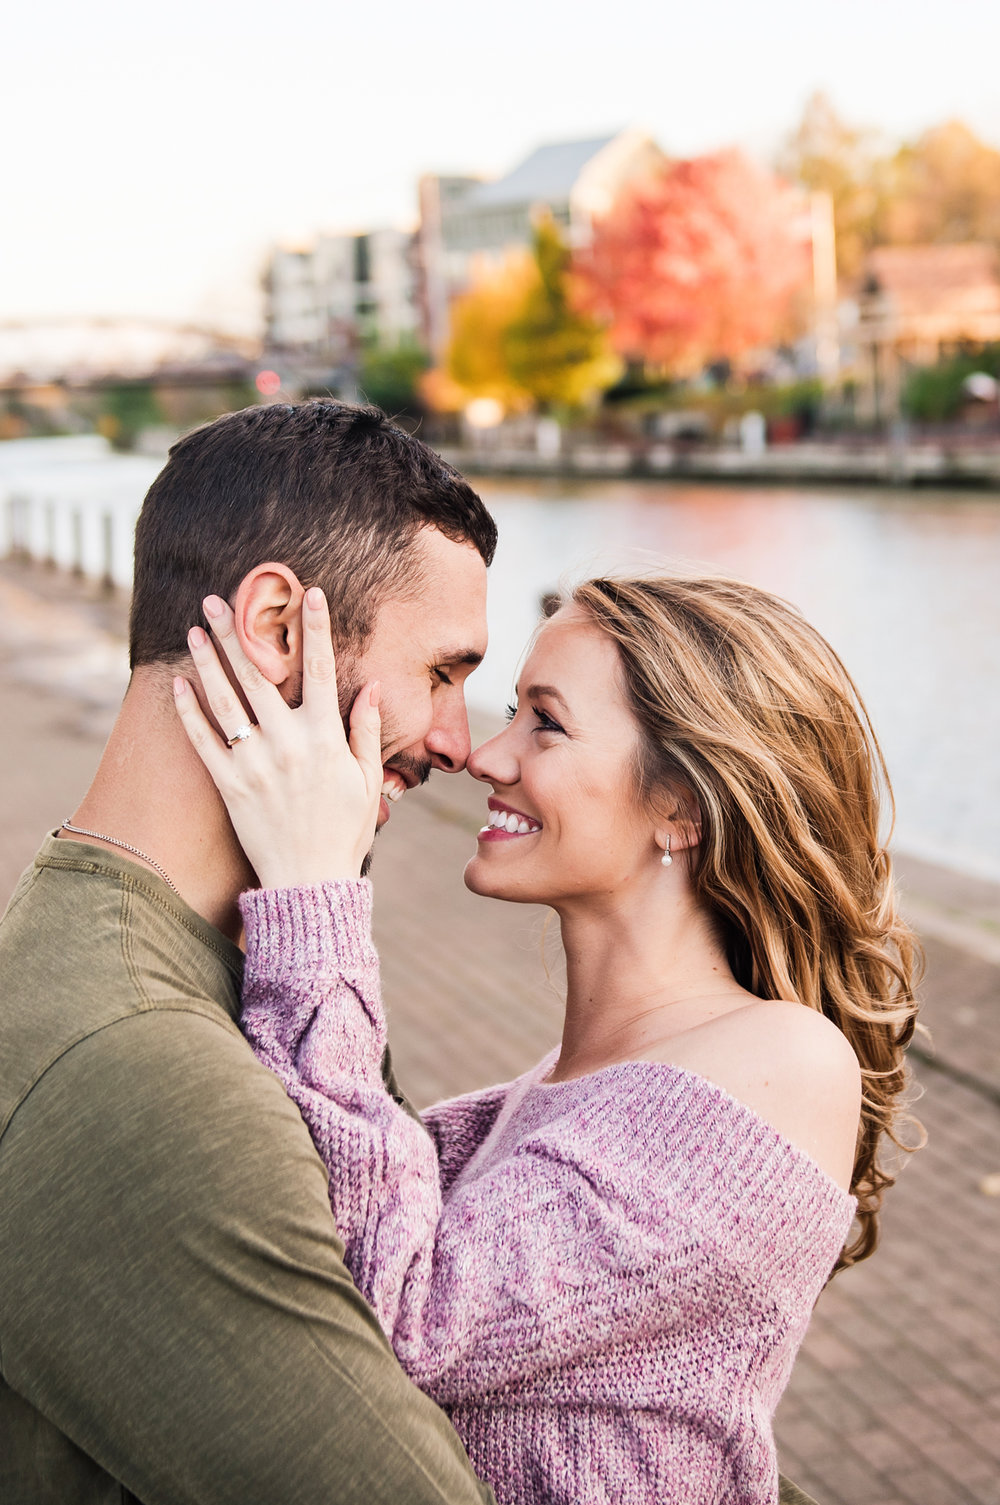 Village_of_Fairport_Rochester_Engagement_Session_JILL_STUDIO_Rochester_NY_Photographer_DSC_8717.jpg